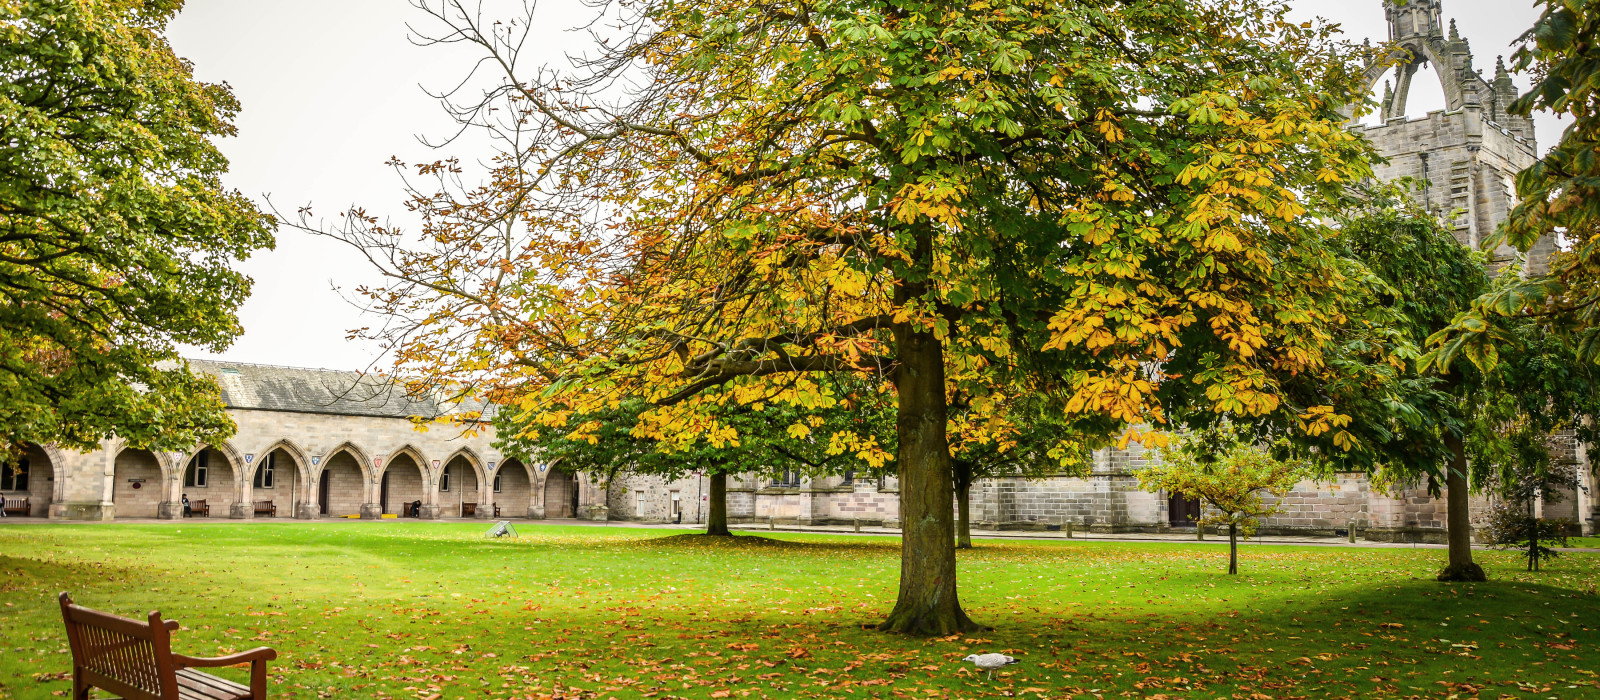 Peaceful and lonely background of autumn park in Aberdeen, Scotland, United Kingdom